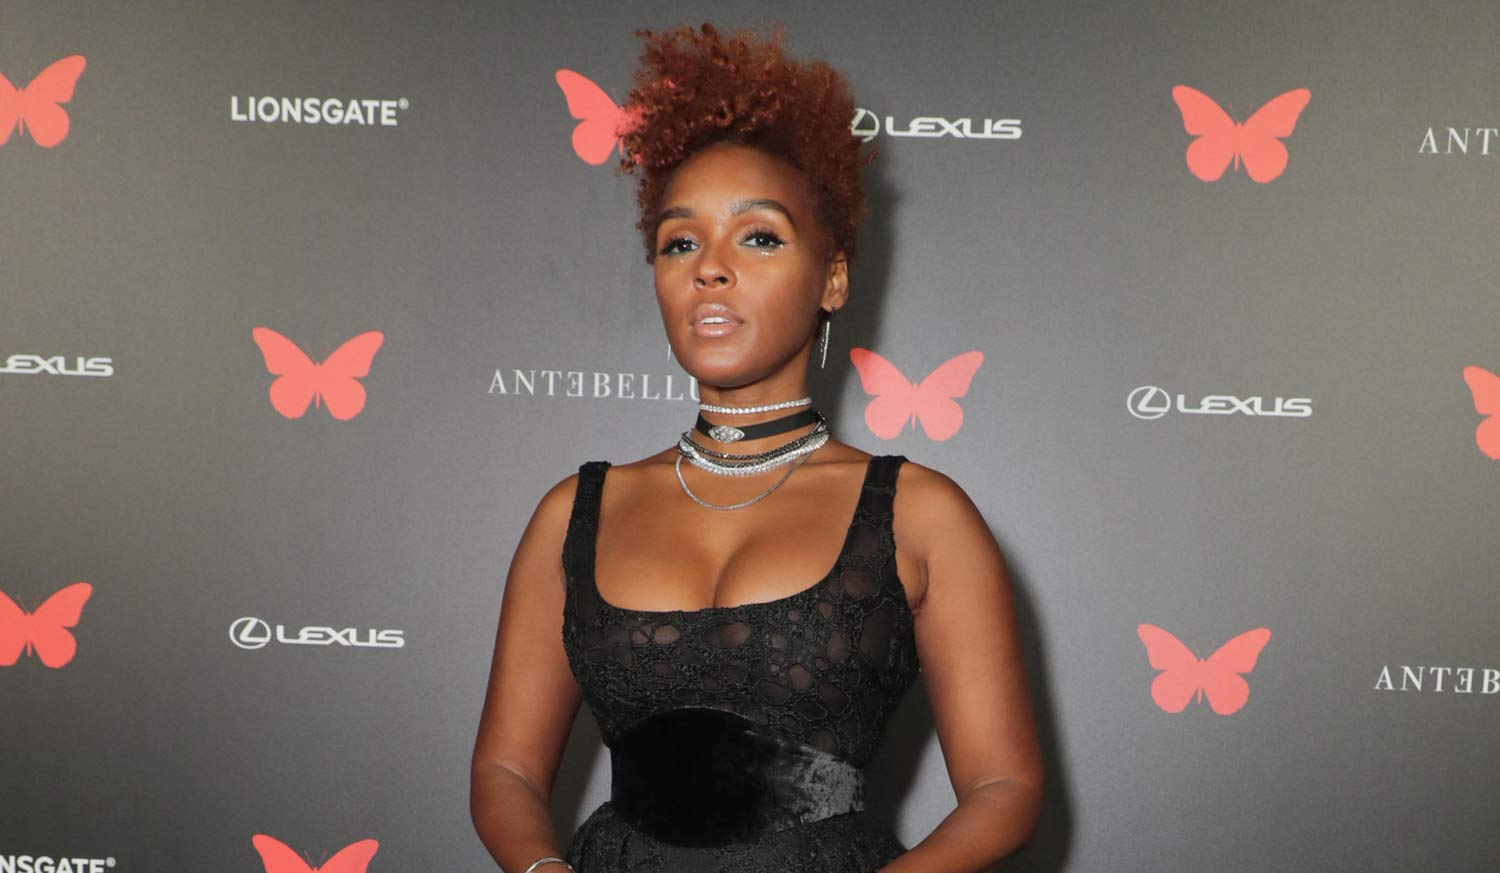 Janelle Monae Glams Up for Drive-In Premiere of 'Antebellum' at LA's The Grove!